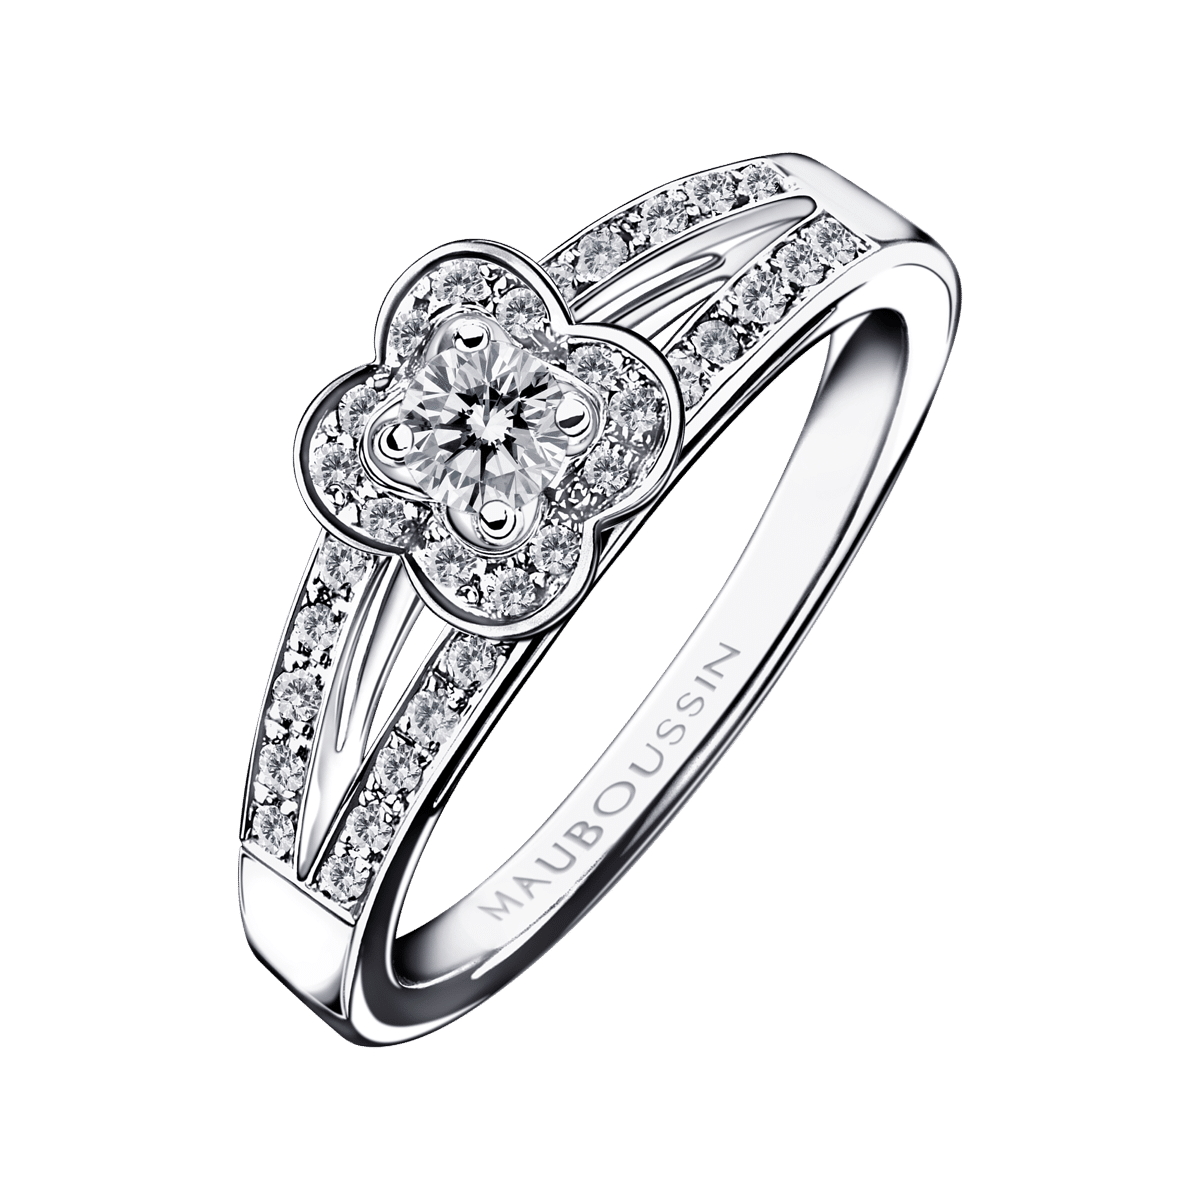 bague-mauboussin-mi-chaine-mi-diamant-or-blanc-et-diamants